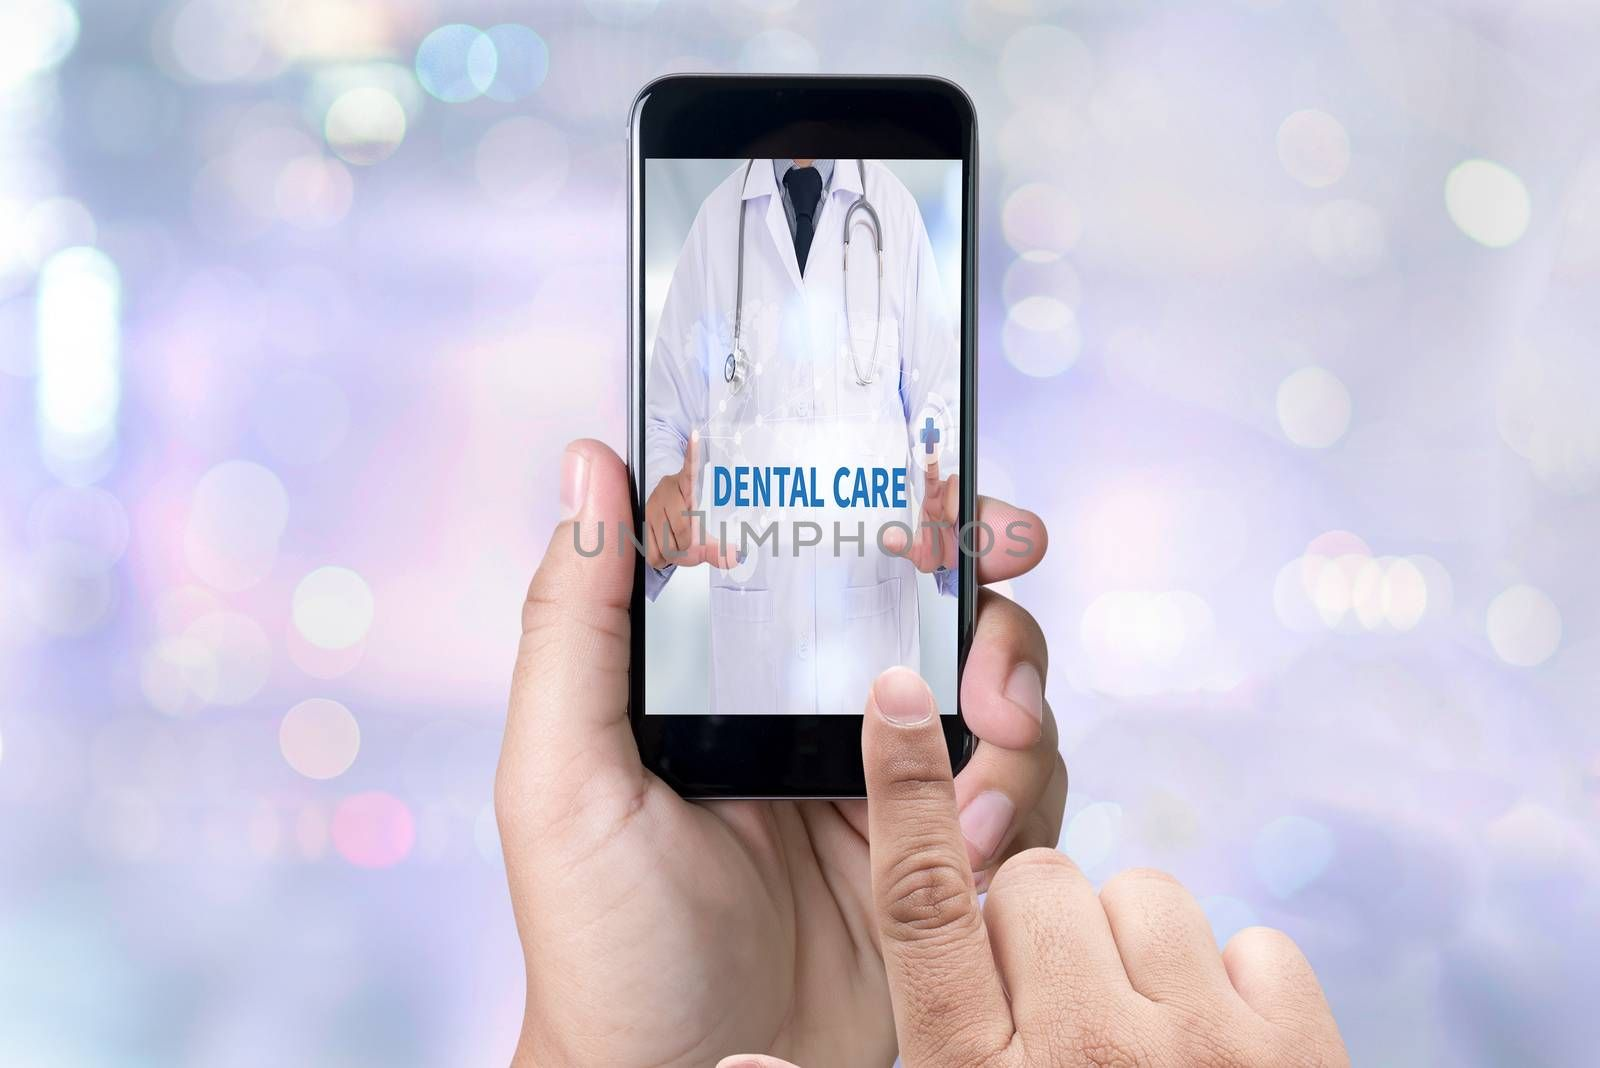 DENTAL CARE person holding a smartphone on blurred cityscape background